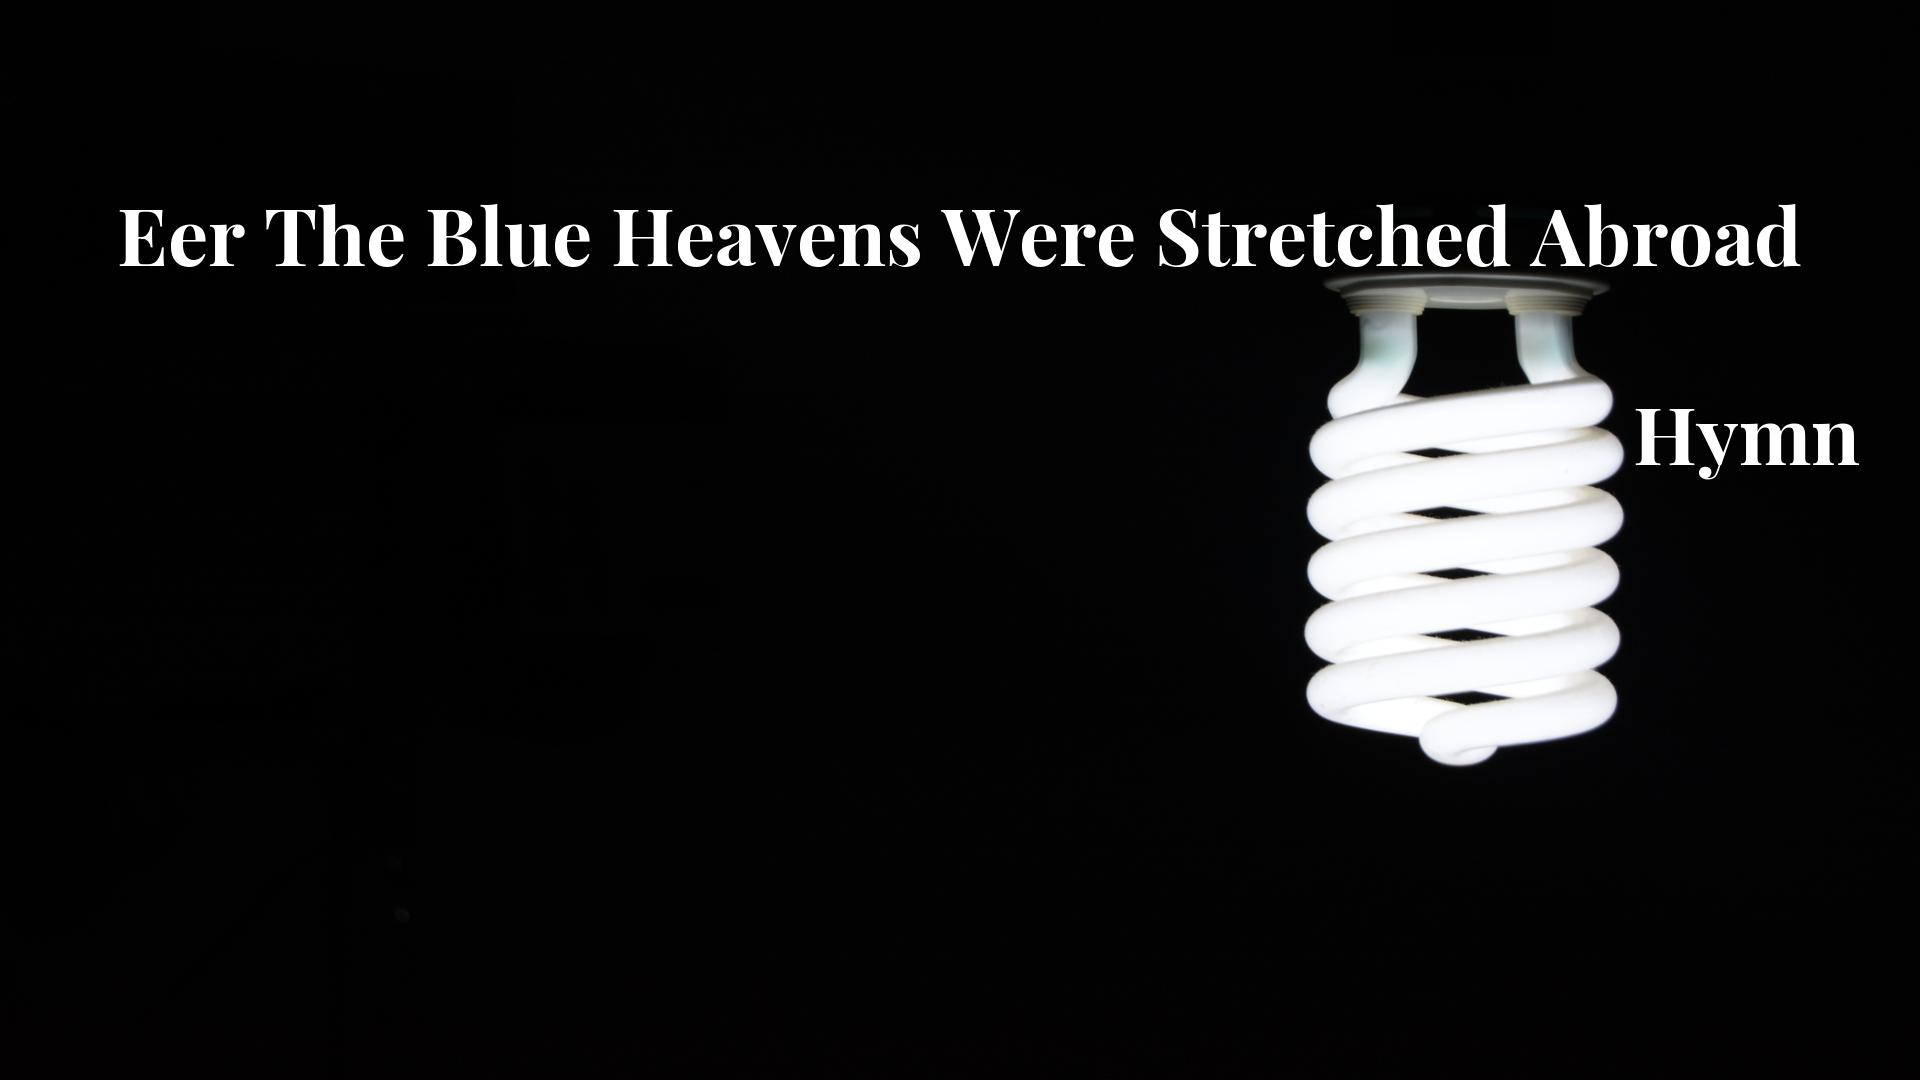 Eer The Blue Heavens Were Stretched Abroad - Hymn